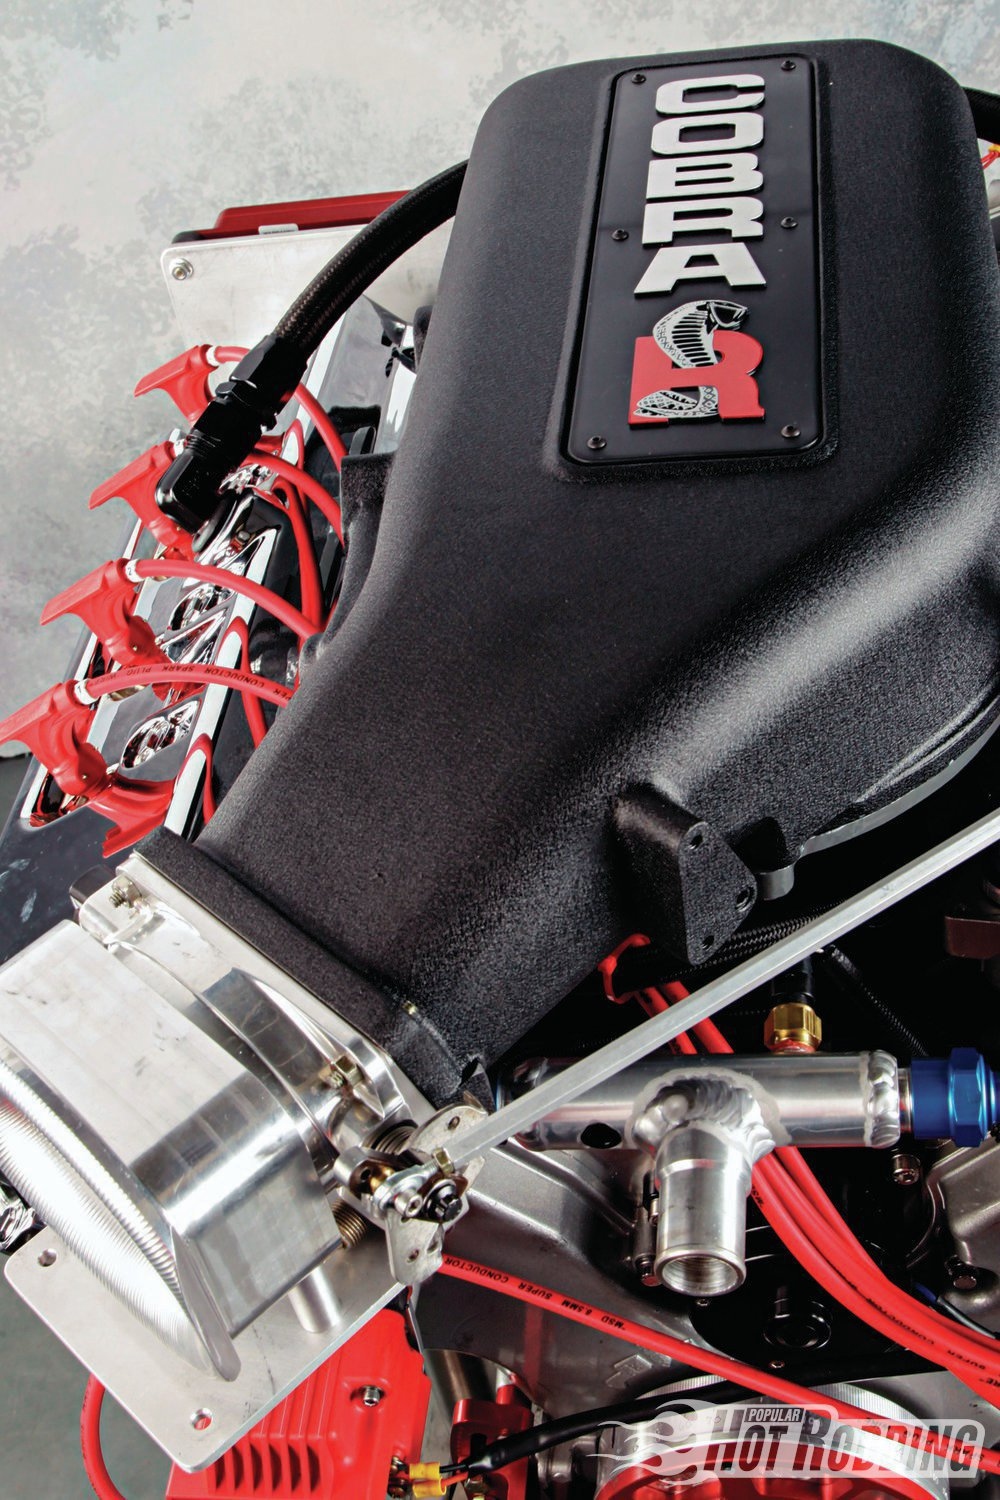 Delivering the airflow to the heads is a rare 2000 Cobra R intake manifold, which is a two-piece design incorporating a removable top plenum cover. The throttle body is a high-capacity unit from Accufab.